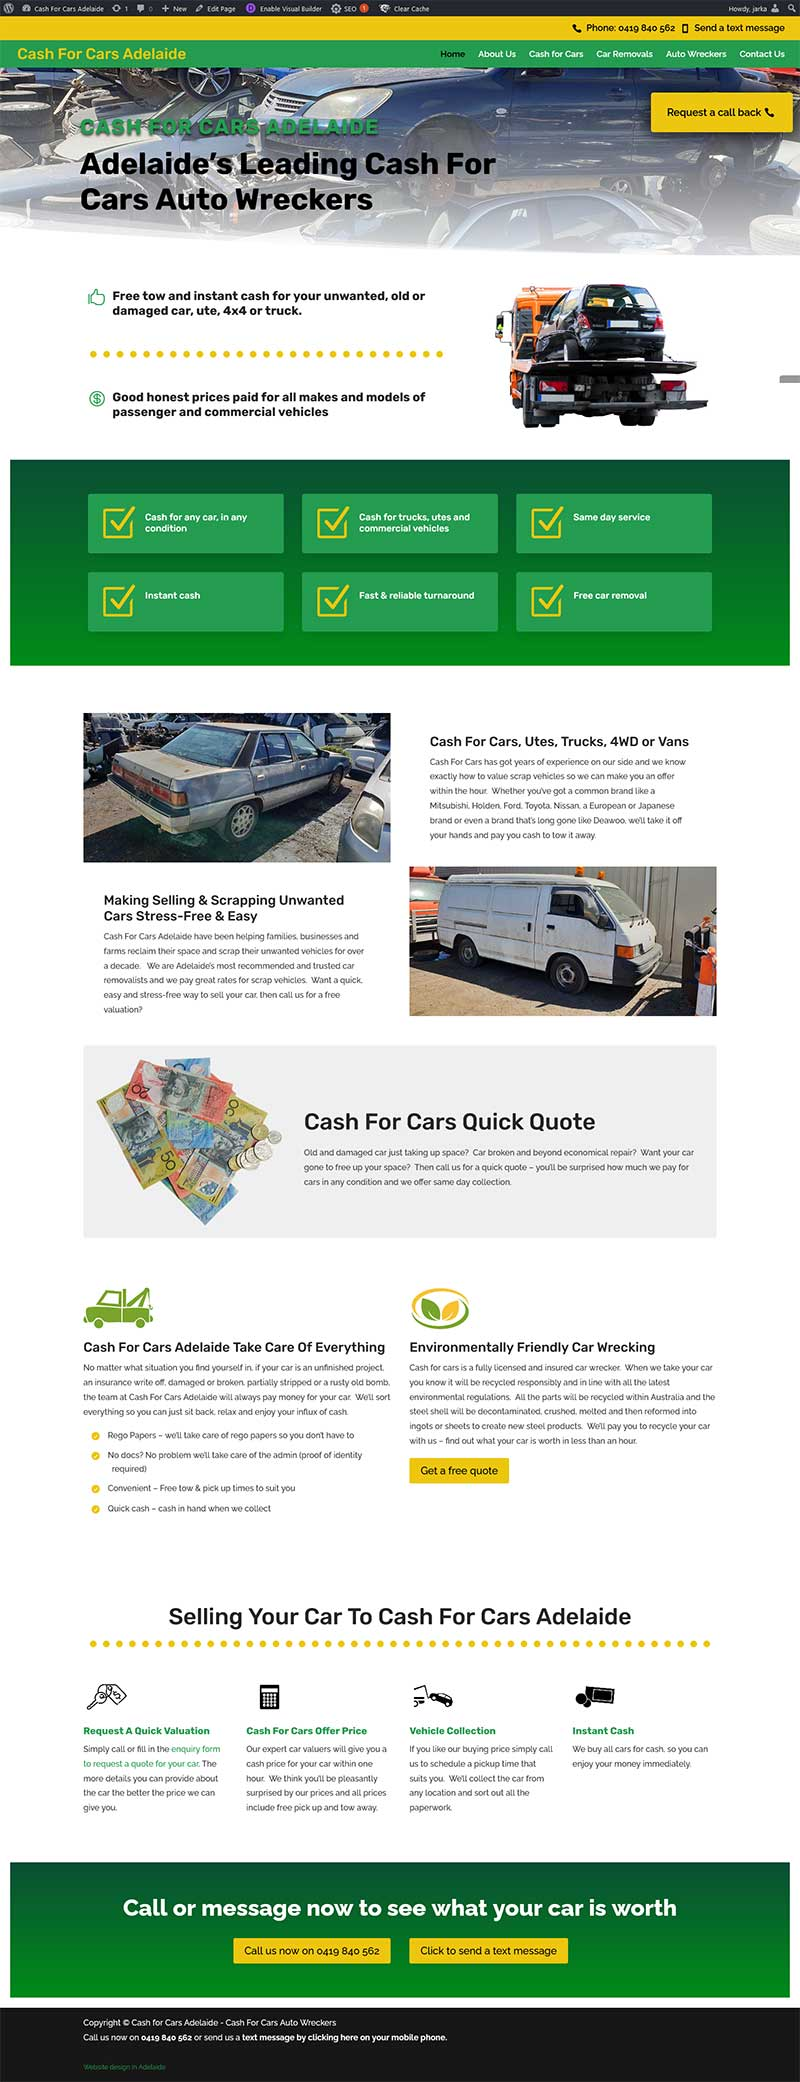 website design and copywriting for cash for cars adelaide